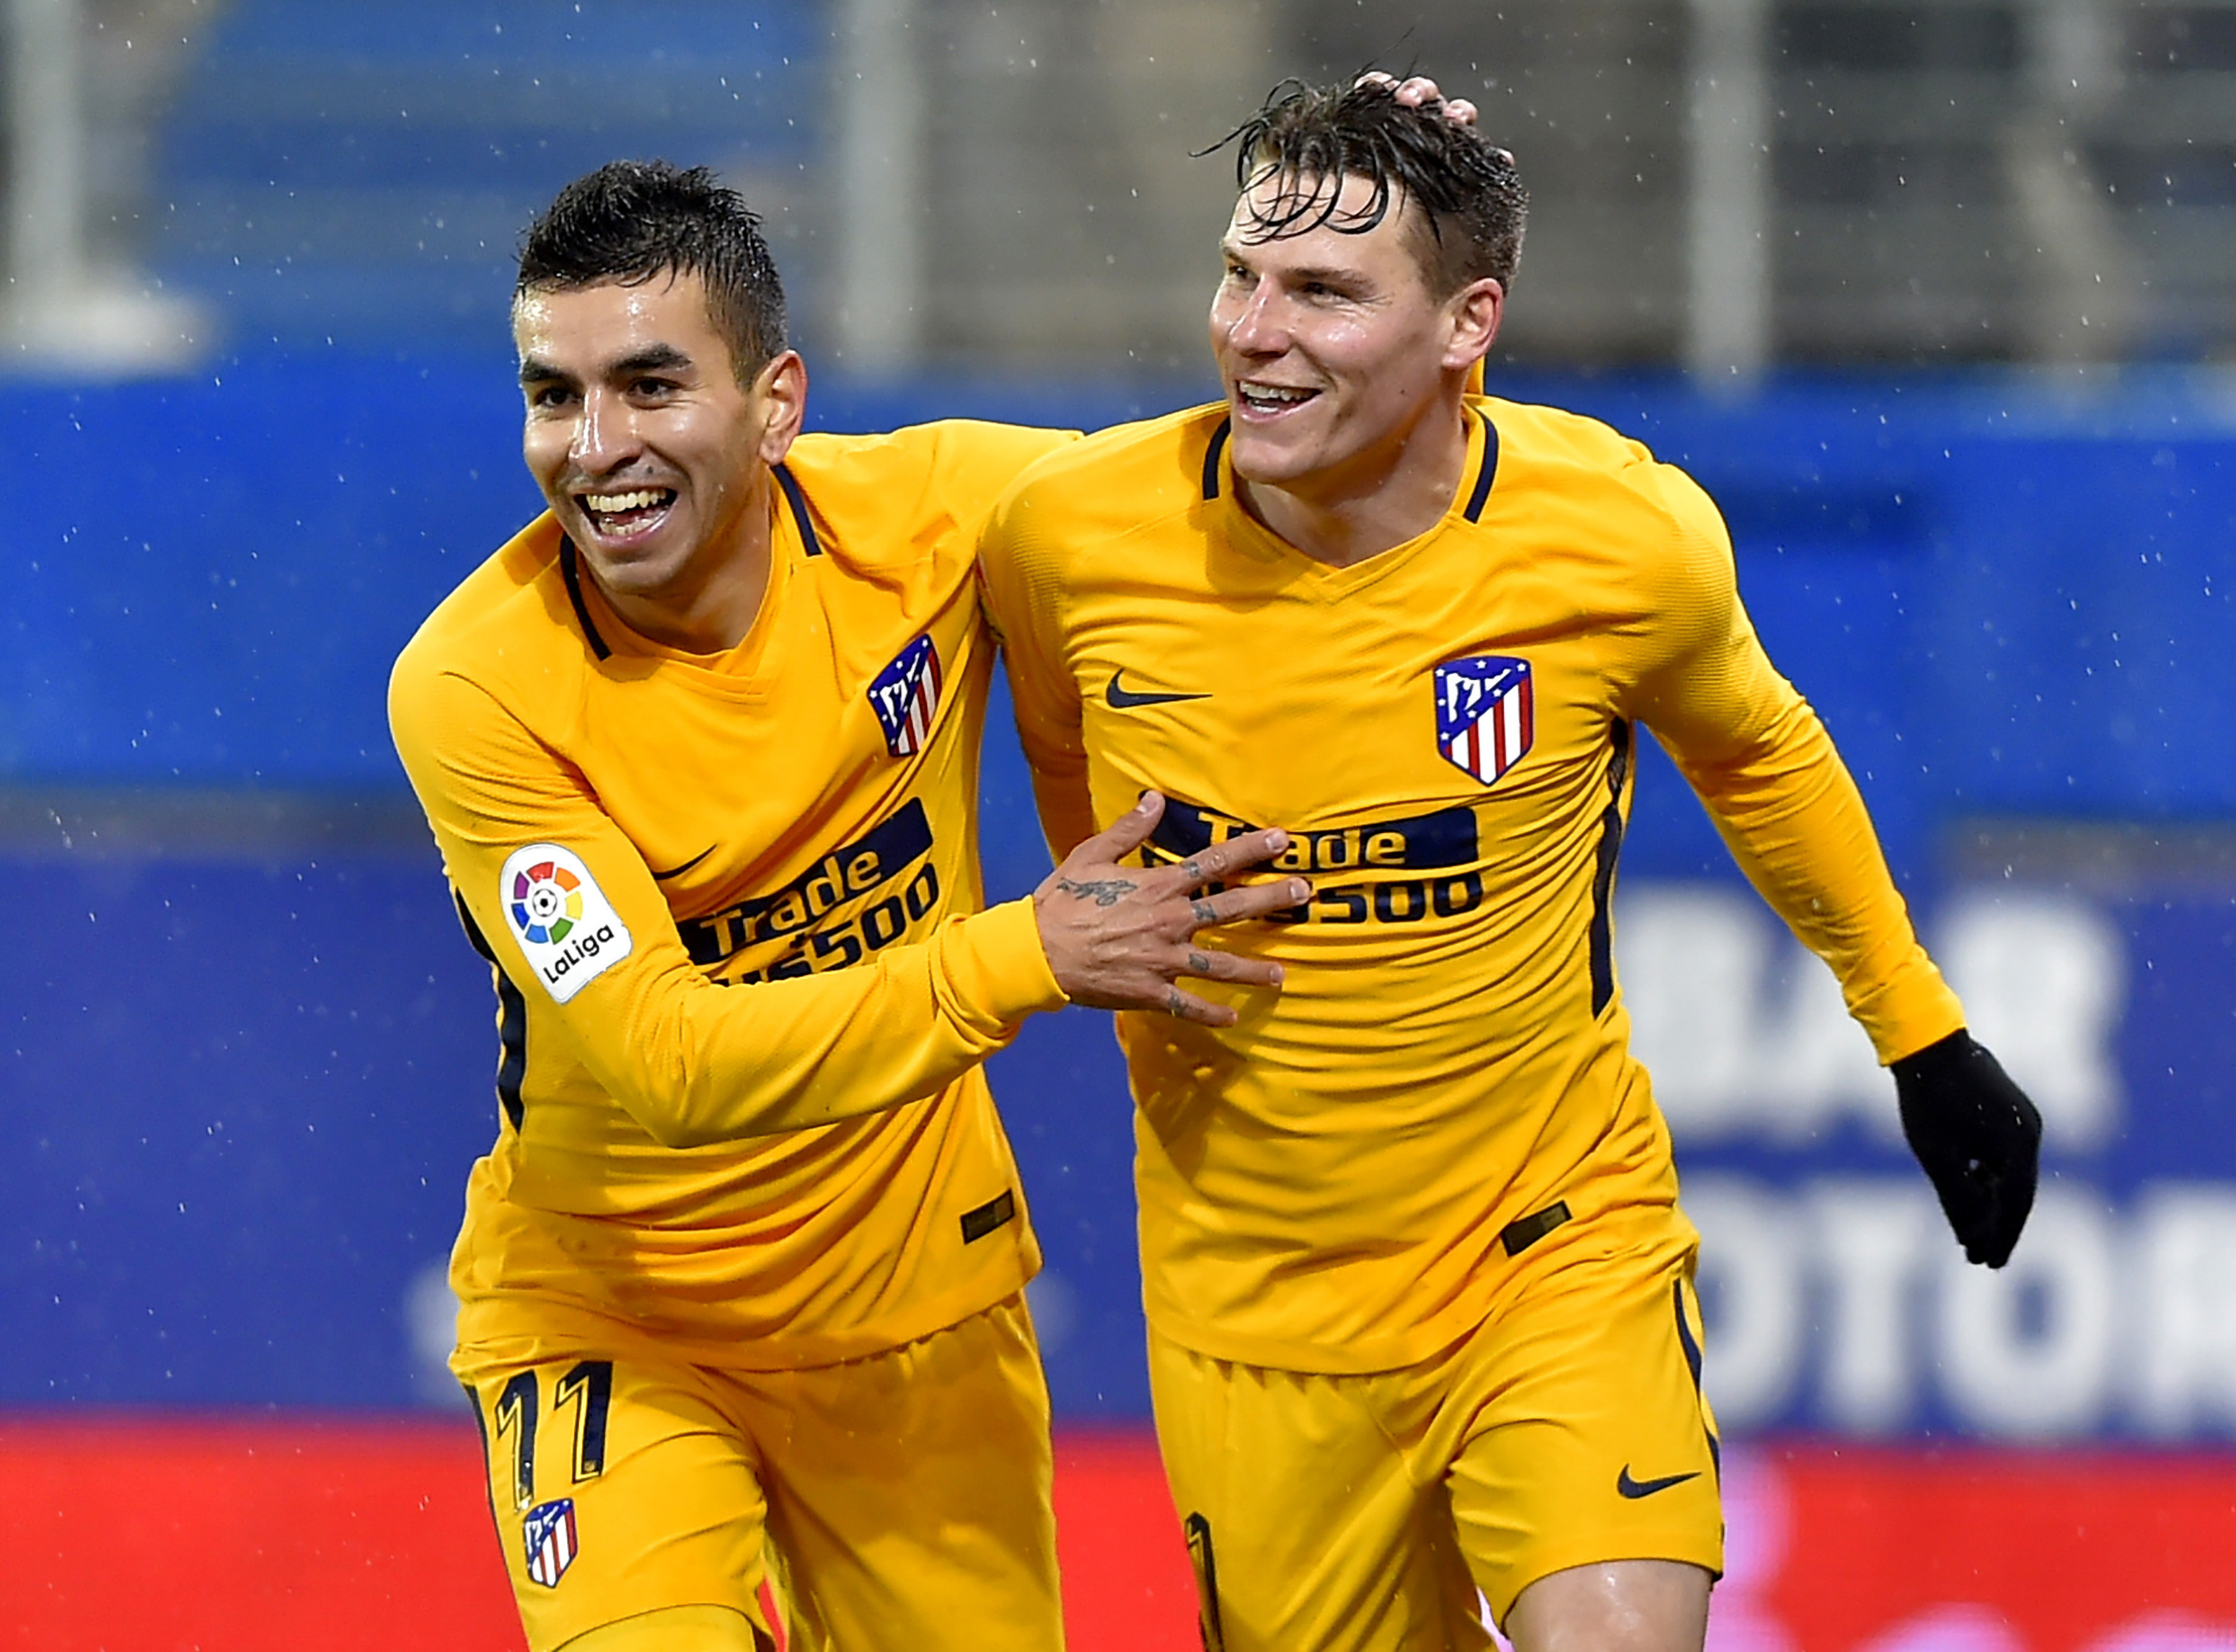 Angel Correa Kevin Gameiro Eibar Atletico Madrid 01/13/18